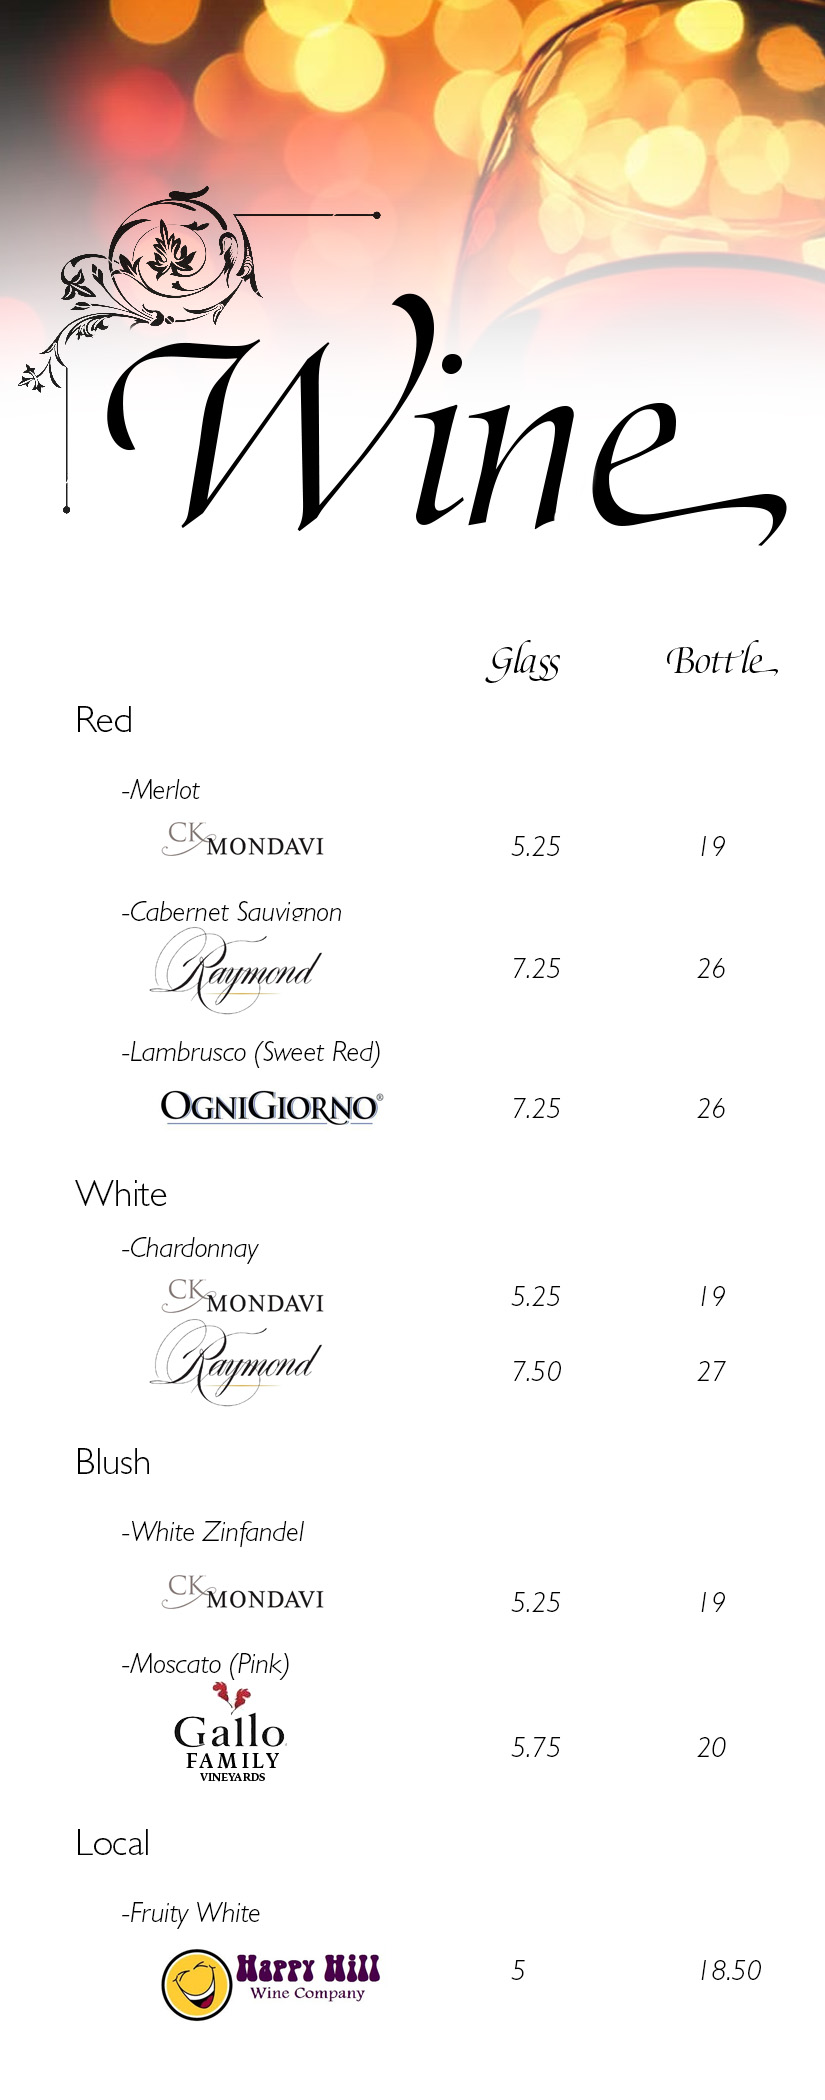 Joe's Pizza Wine List.jpg